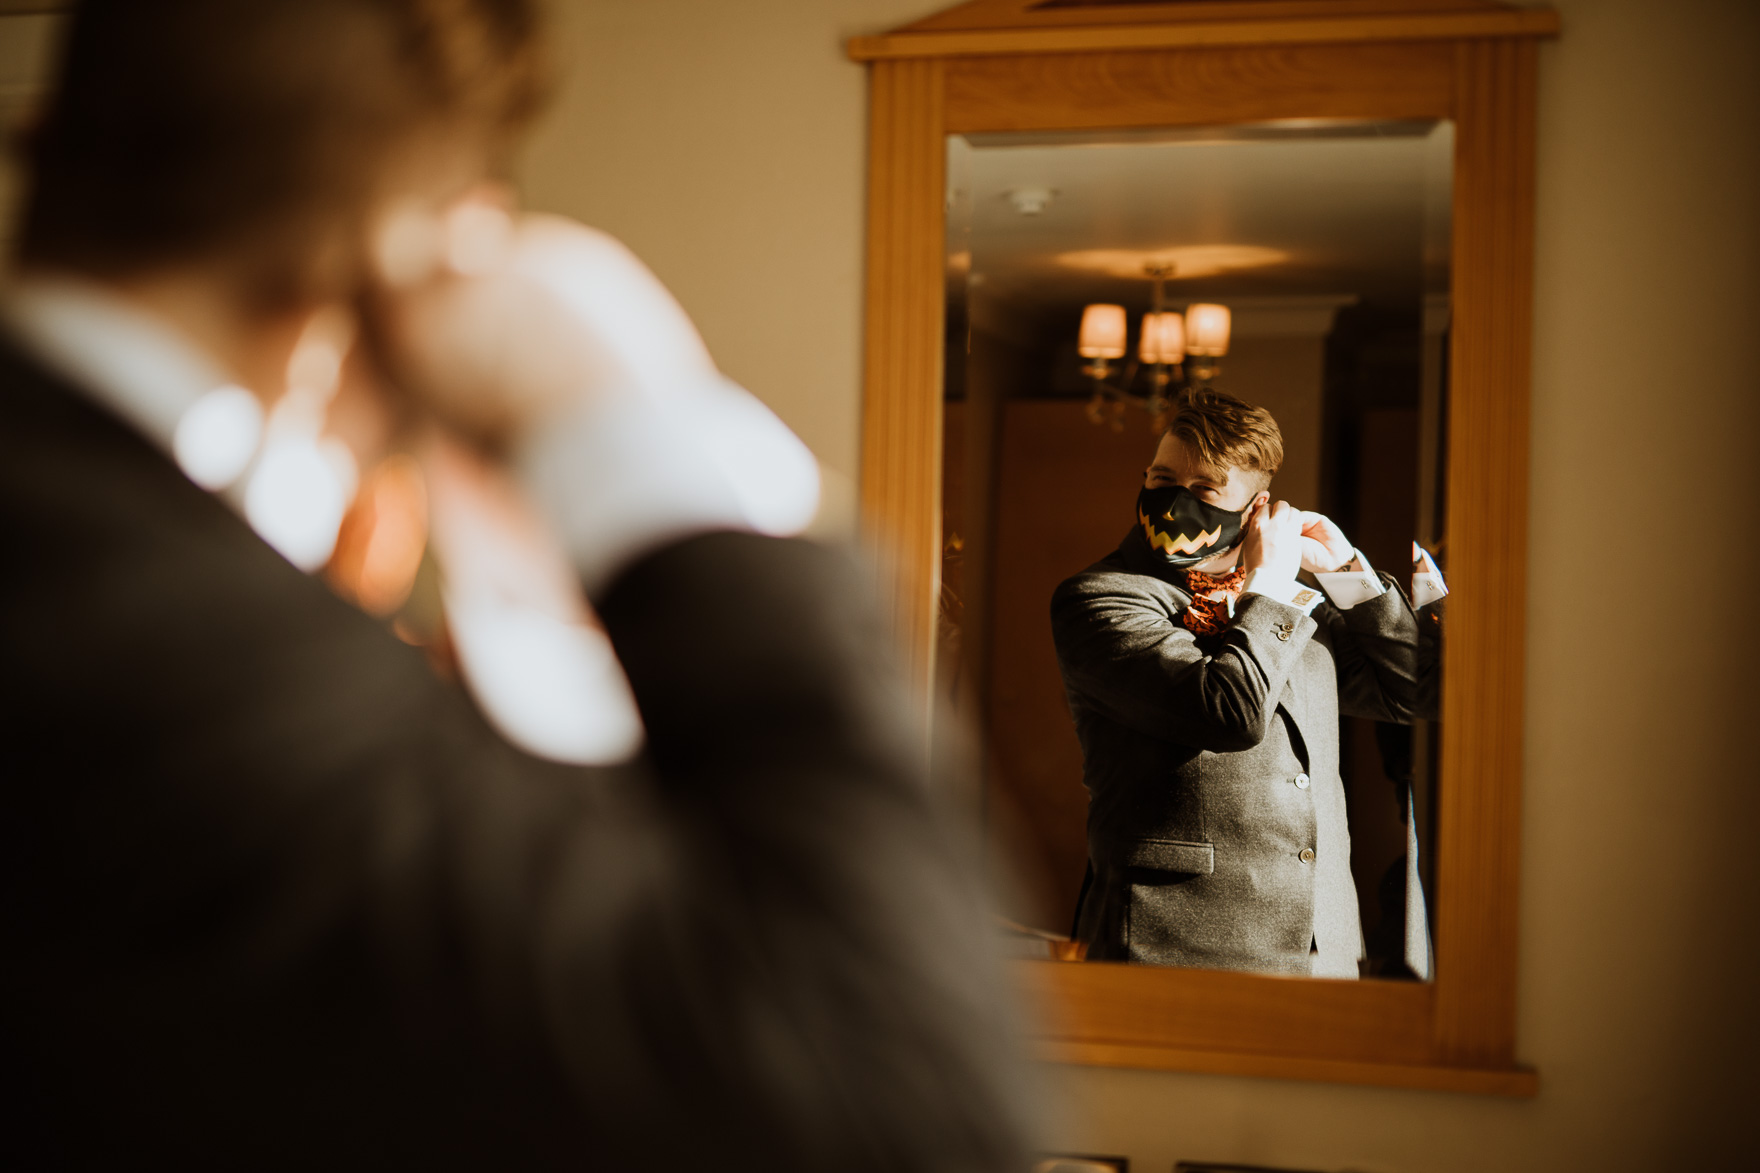 A person holding a cat in front of a mirror